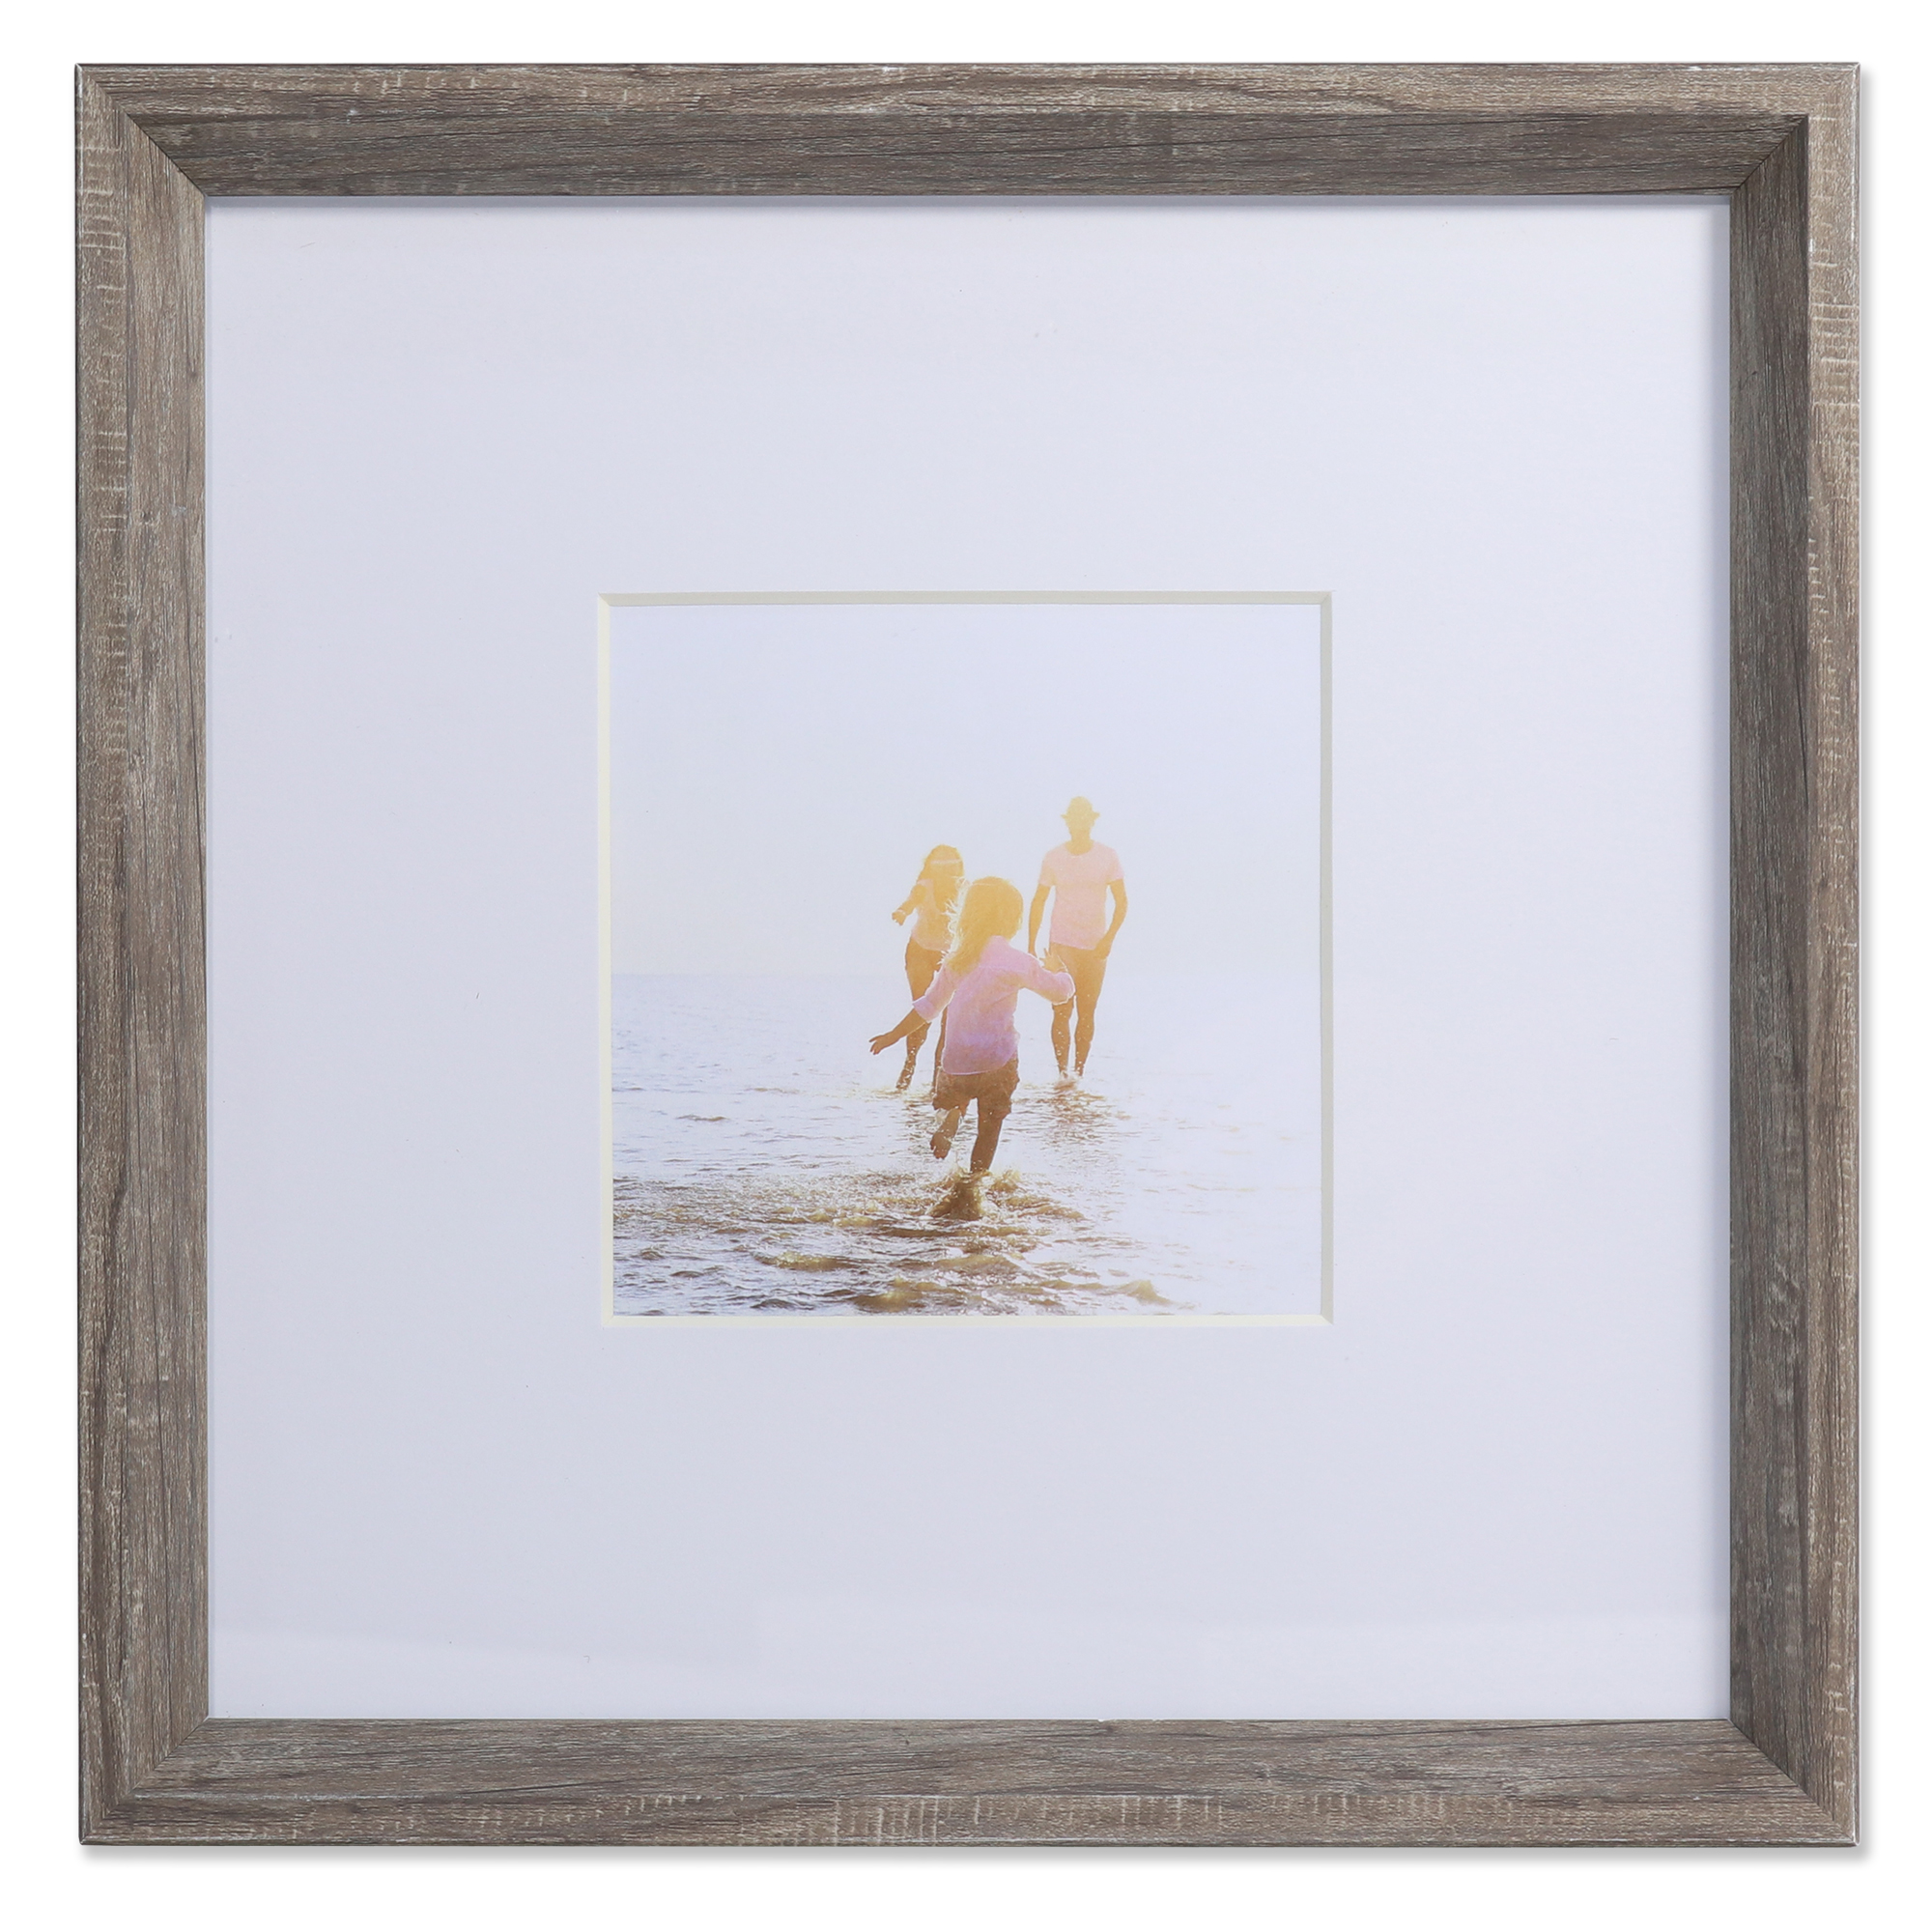 Canon Brockton 10x10 Black Frame With 5x7 Mat And Glass Glazing